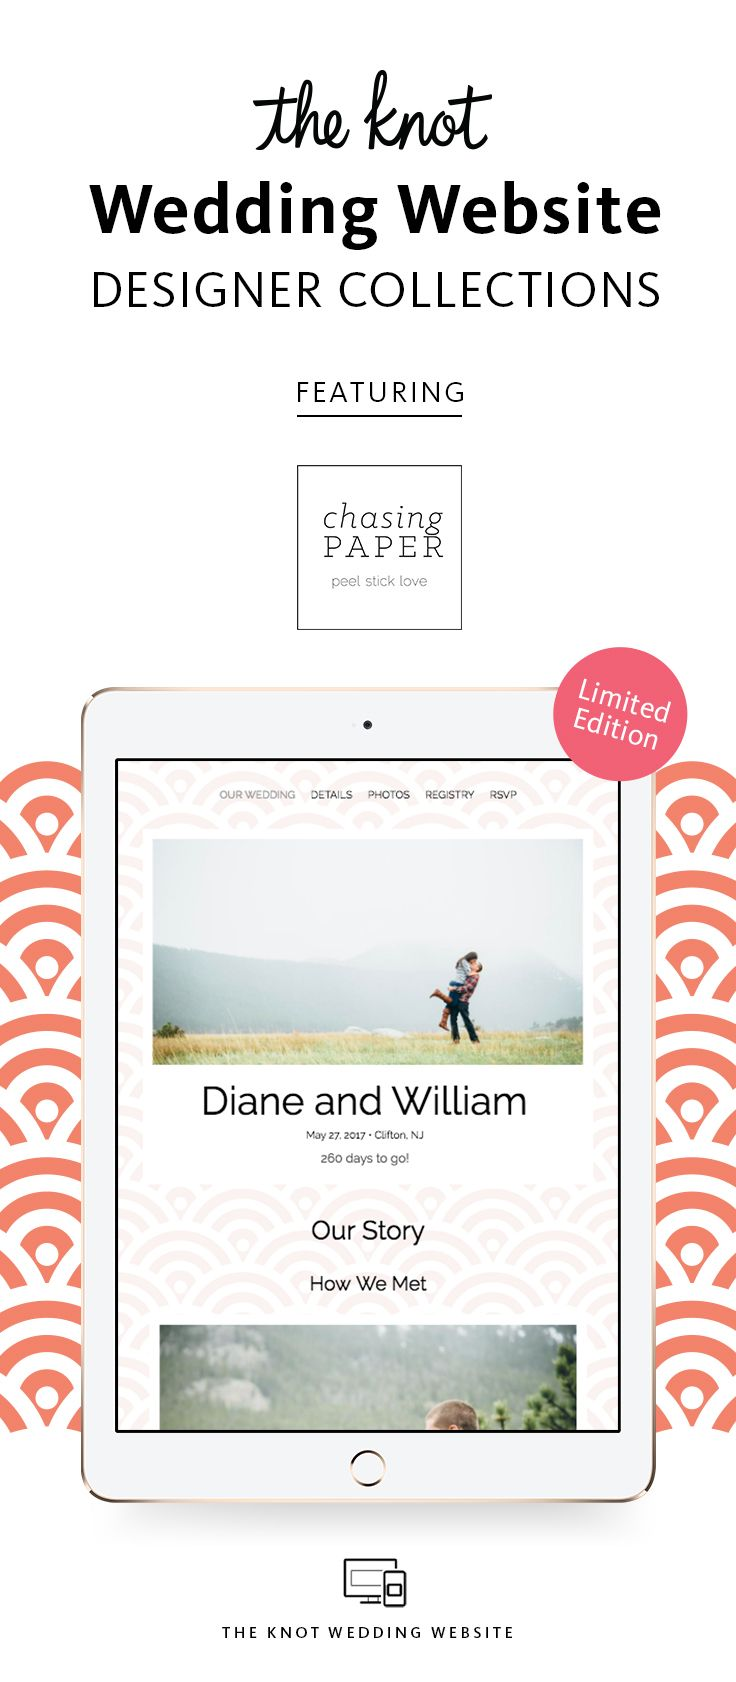 We've teamed up with Chasing Paper to create a wedding